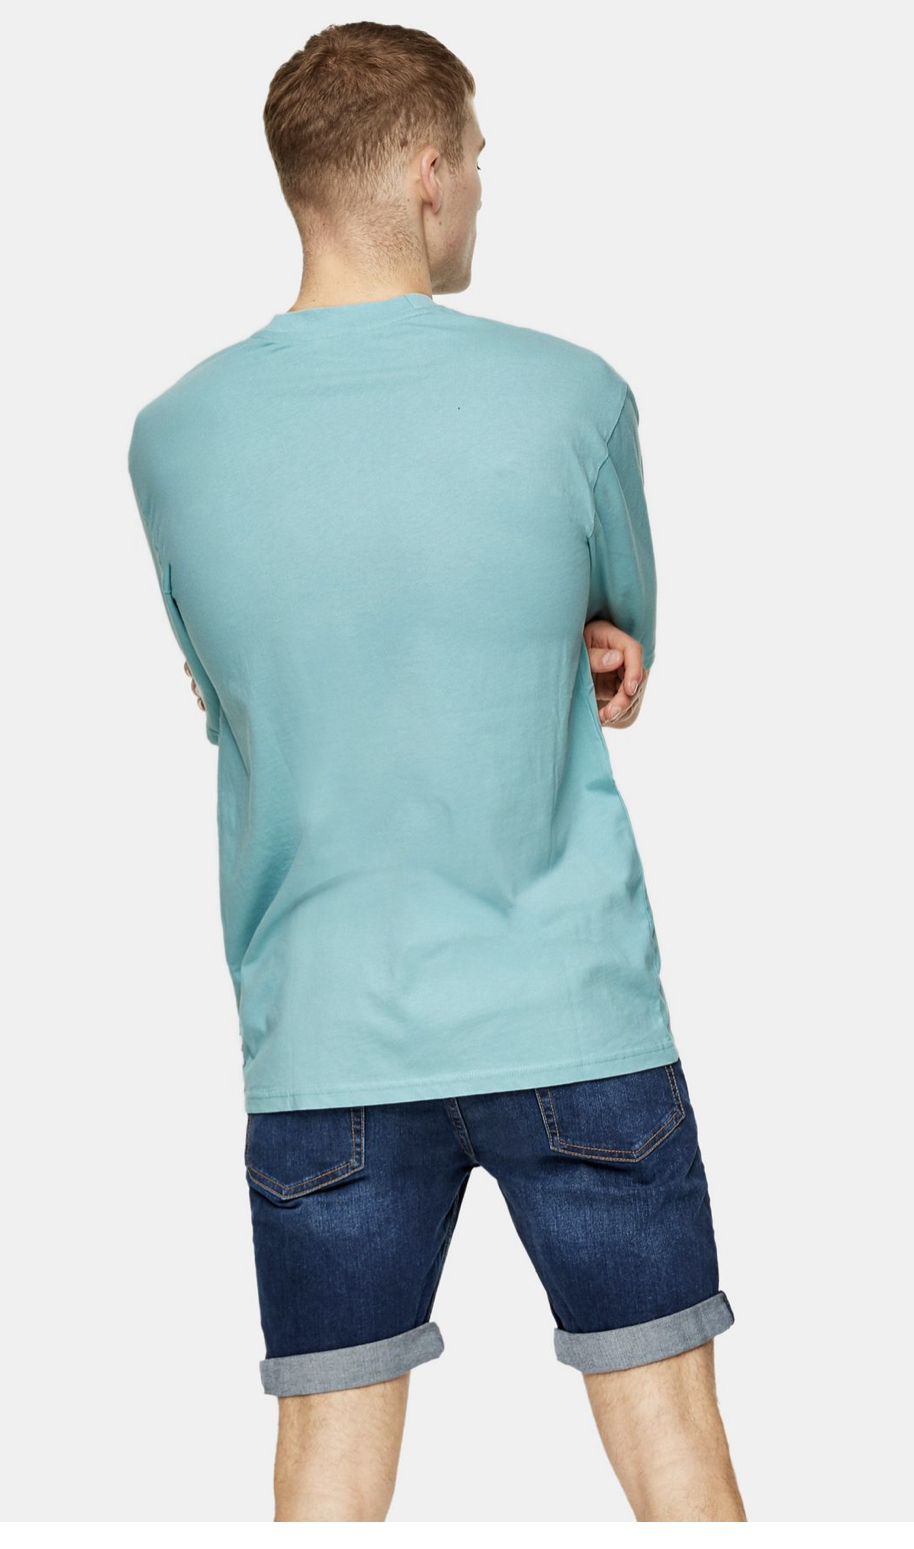 ONLY & SONS Teal Classic T-Shirt